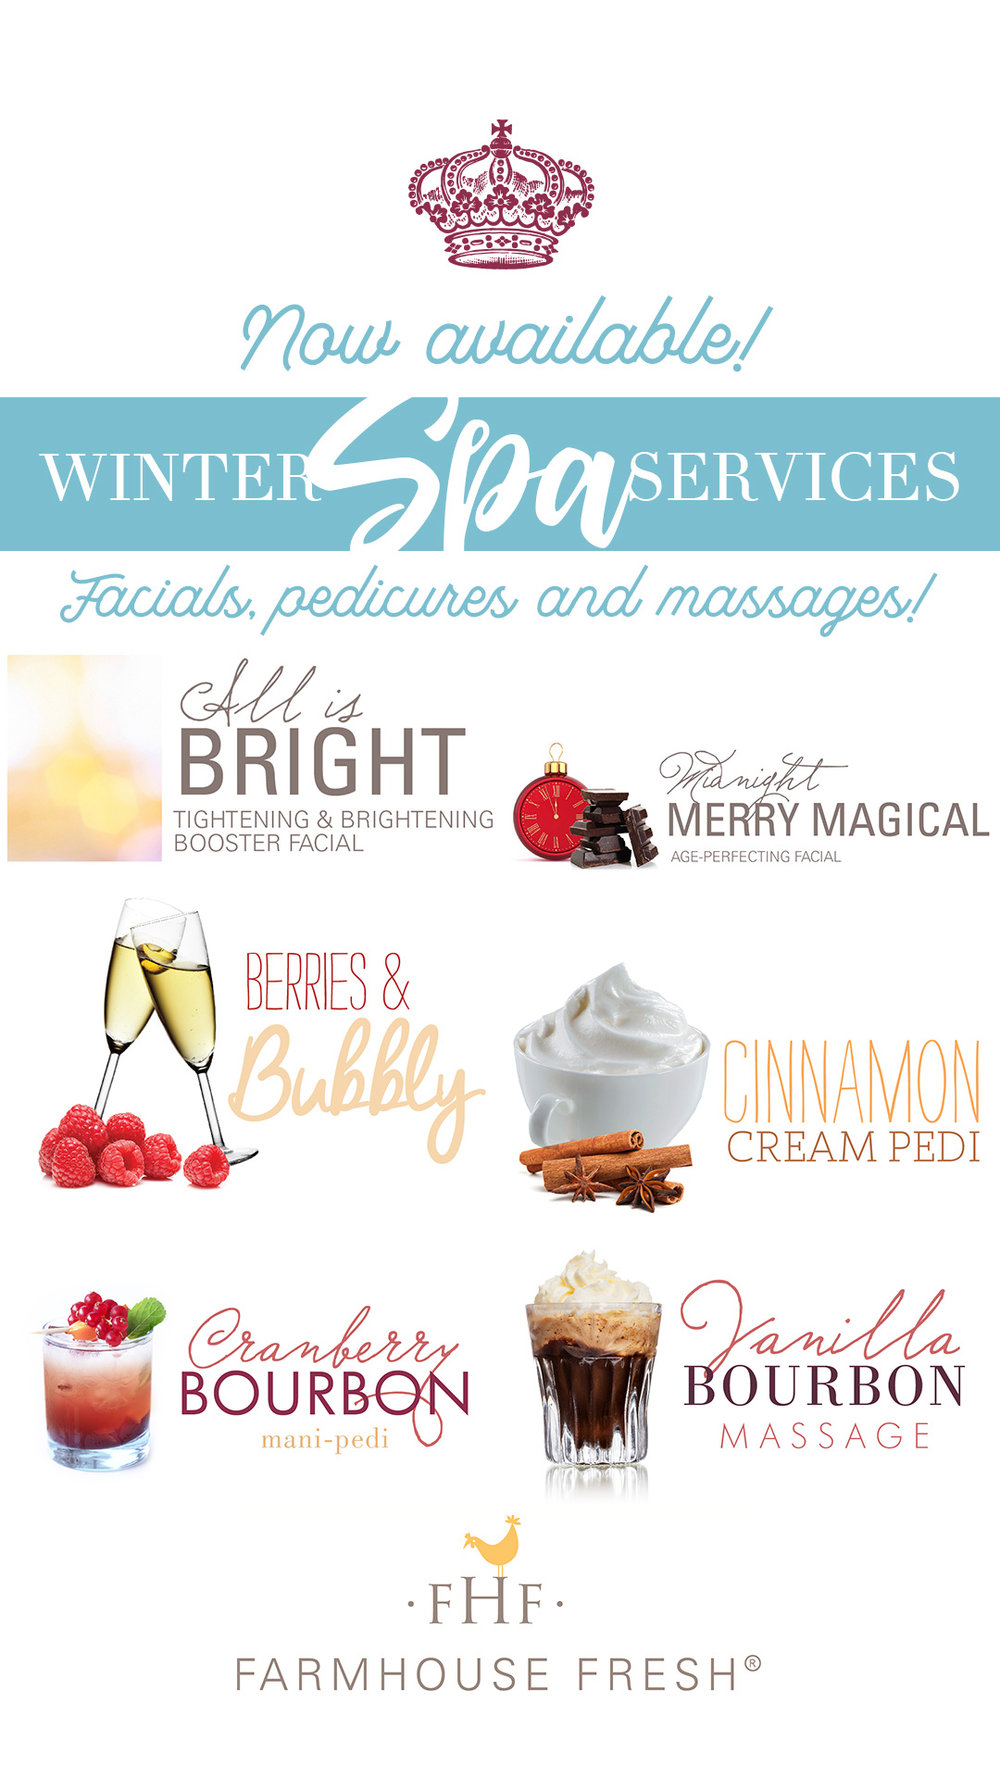 Winter-Spa-Services-Story1.jpg